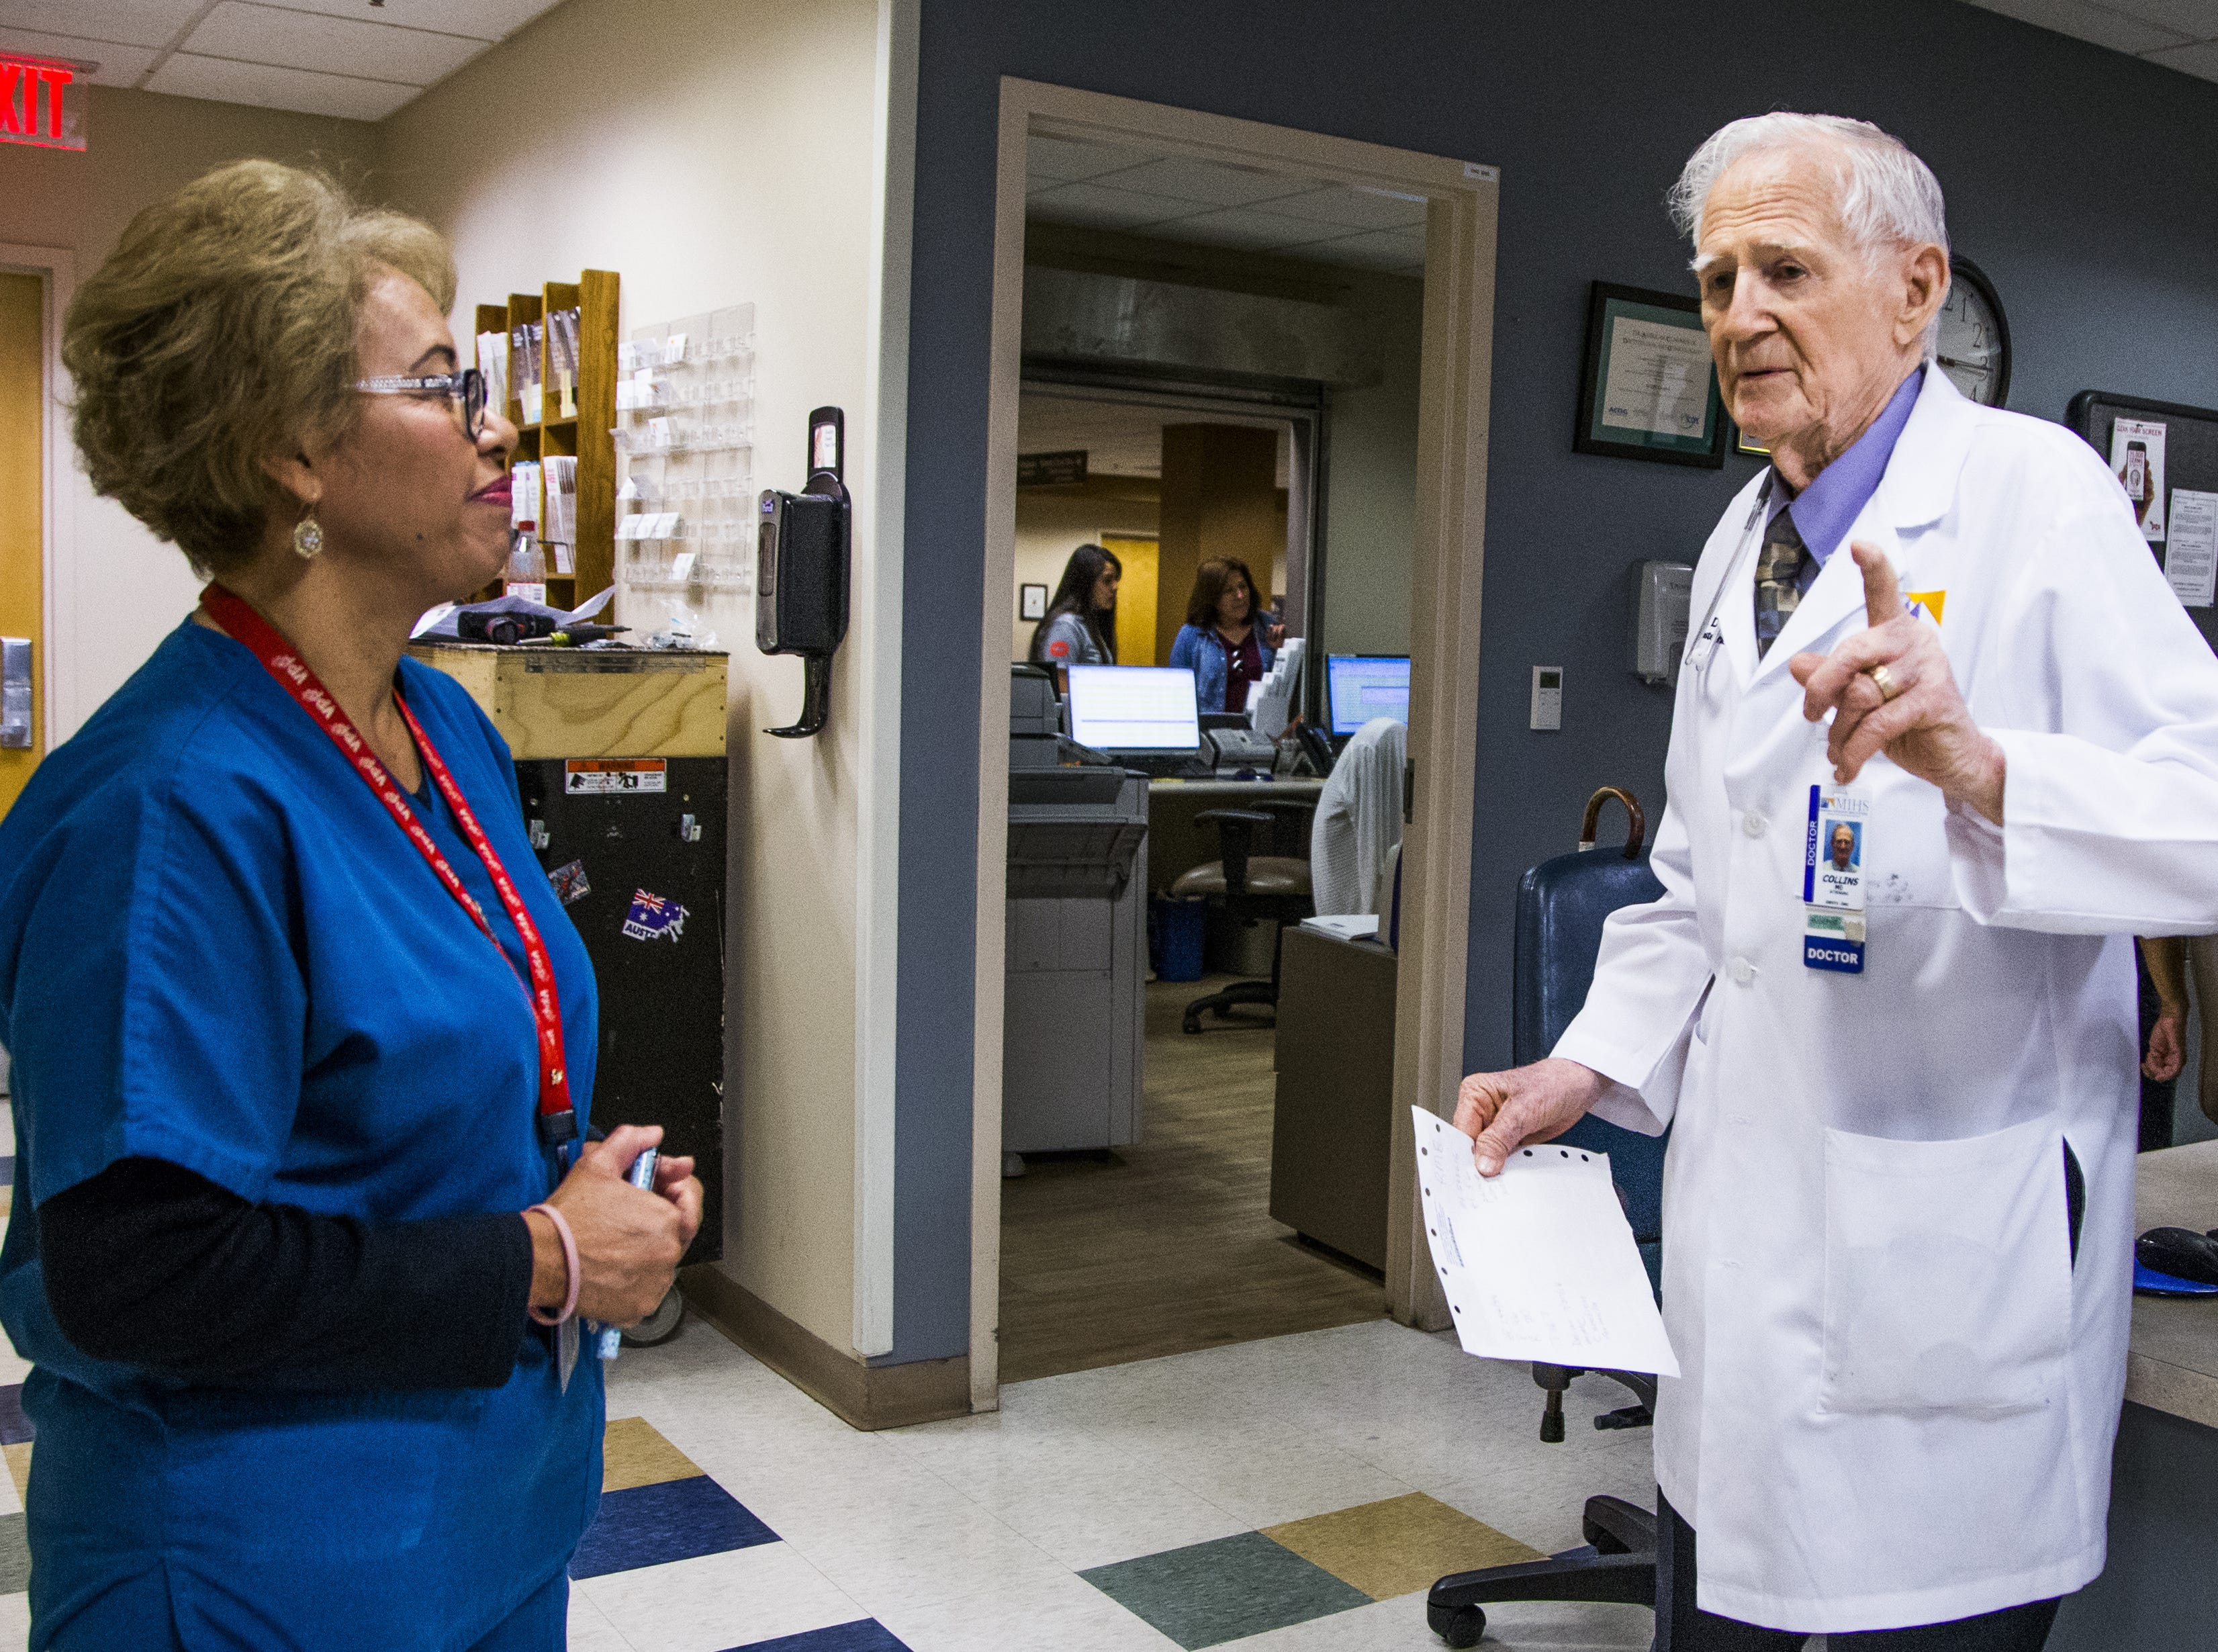 Dr. C. Dale Collins, 98, is finally retiring. He chats with medical assistant Isabel Gonzalez, left, on Aug. 24, 2018, one of his last days at Maricopa Integrated Health System.